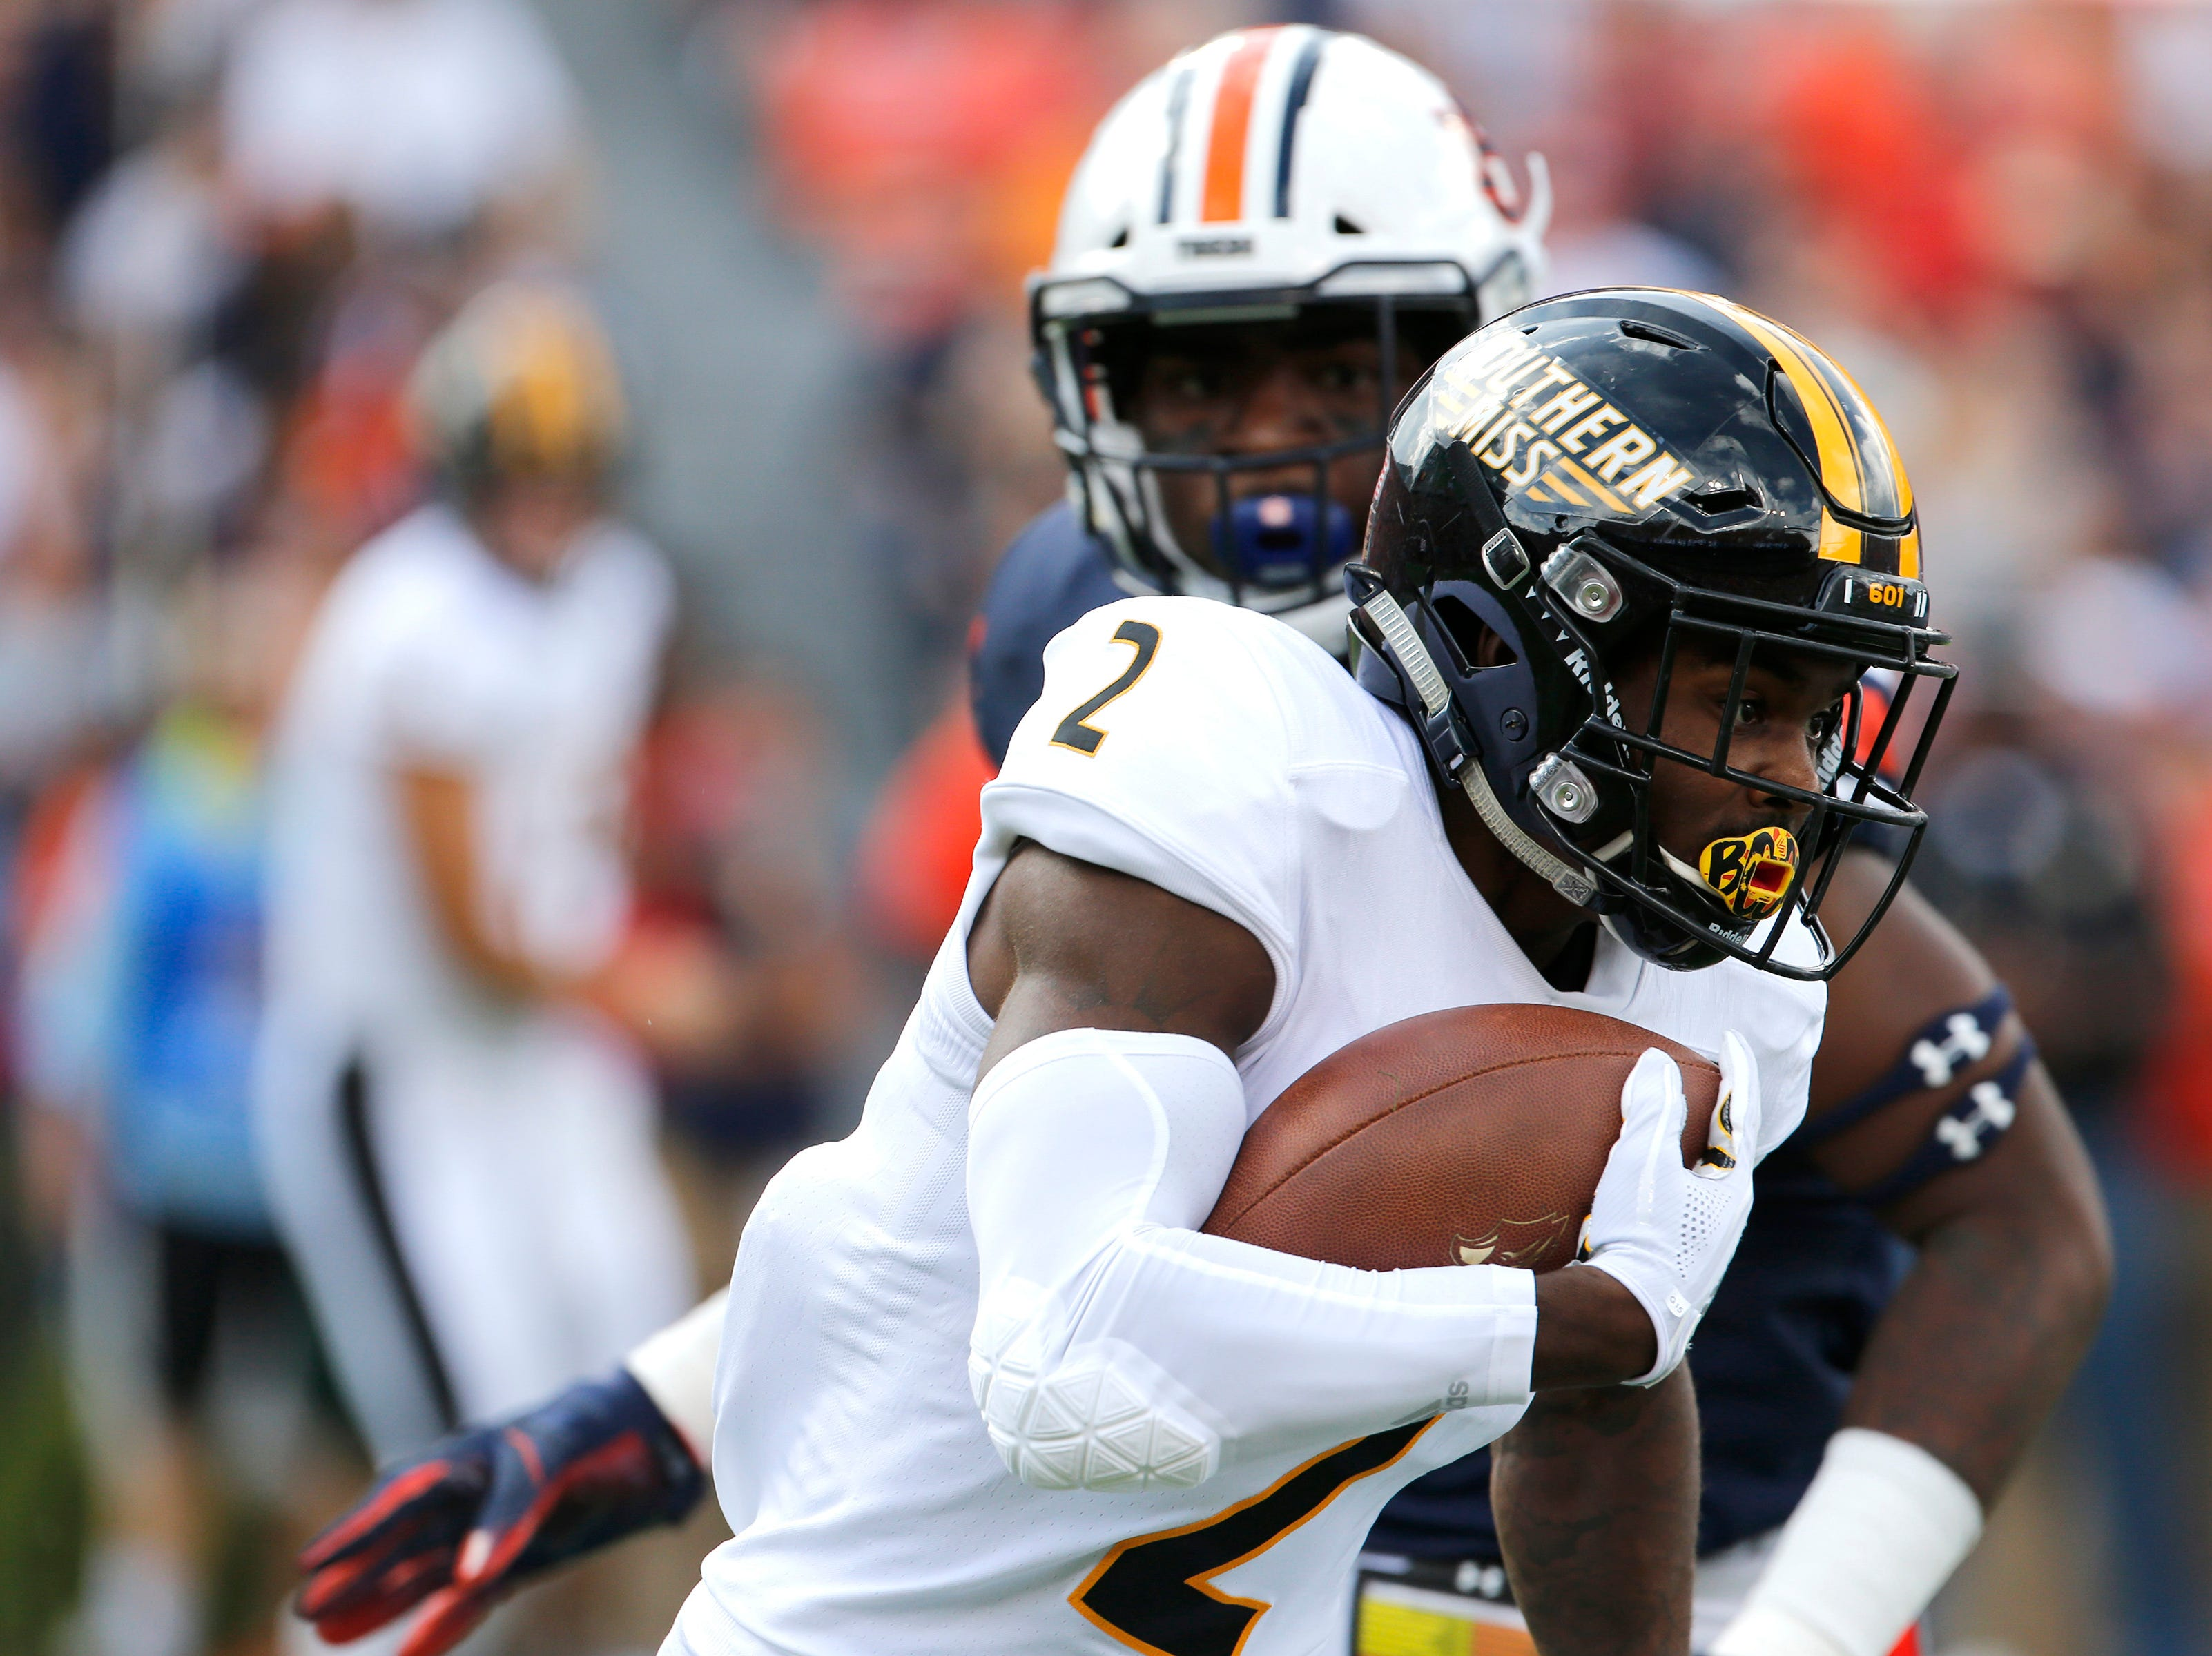 Sep 29, 2018; Auburn, AL, USA; Southern Miss Golden Eagles receiver Jaylond Adams (2) carries against the Auburn Tigers during the first quarter at Jordan-Hare Stadium. Mandatory Credit: John Reed-USA TODAY Sports